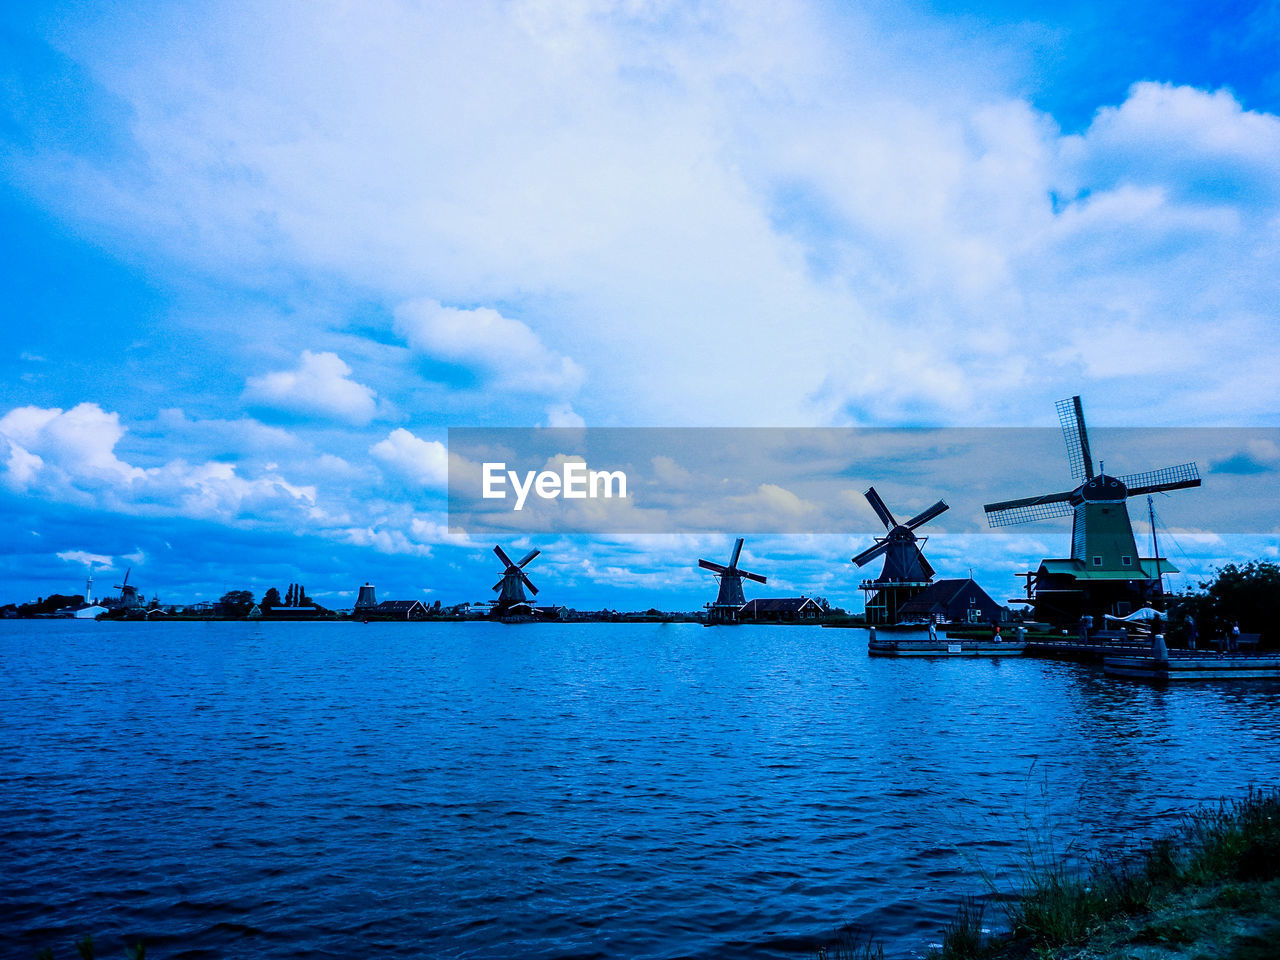 renewable energy, water, alternative energy, cloud - sky, sky, fuel and power generation, wind power, turbine, wind turbine, environmental conservation, waterfront, traditional windmill, environment, day, nature, beauty in nature, no people, architecture, built structure, outdoors